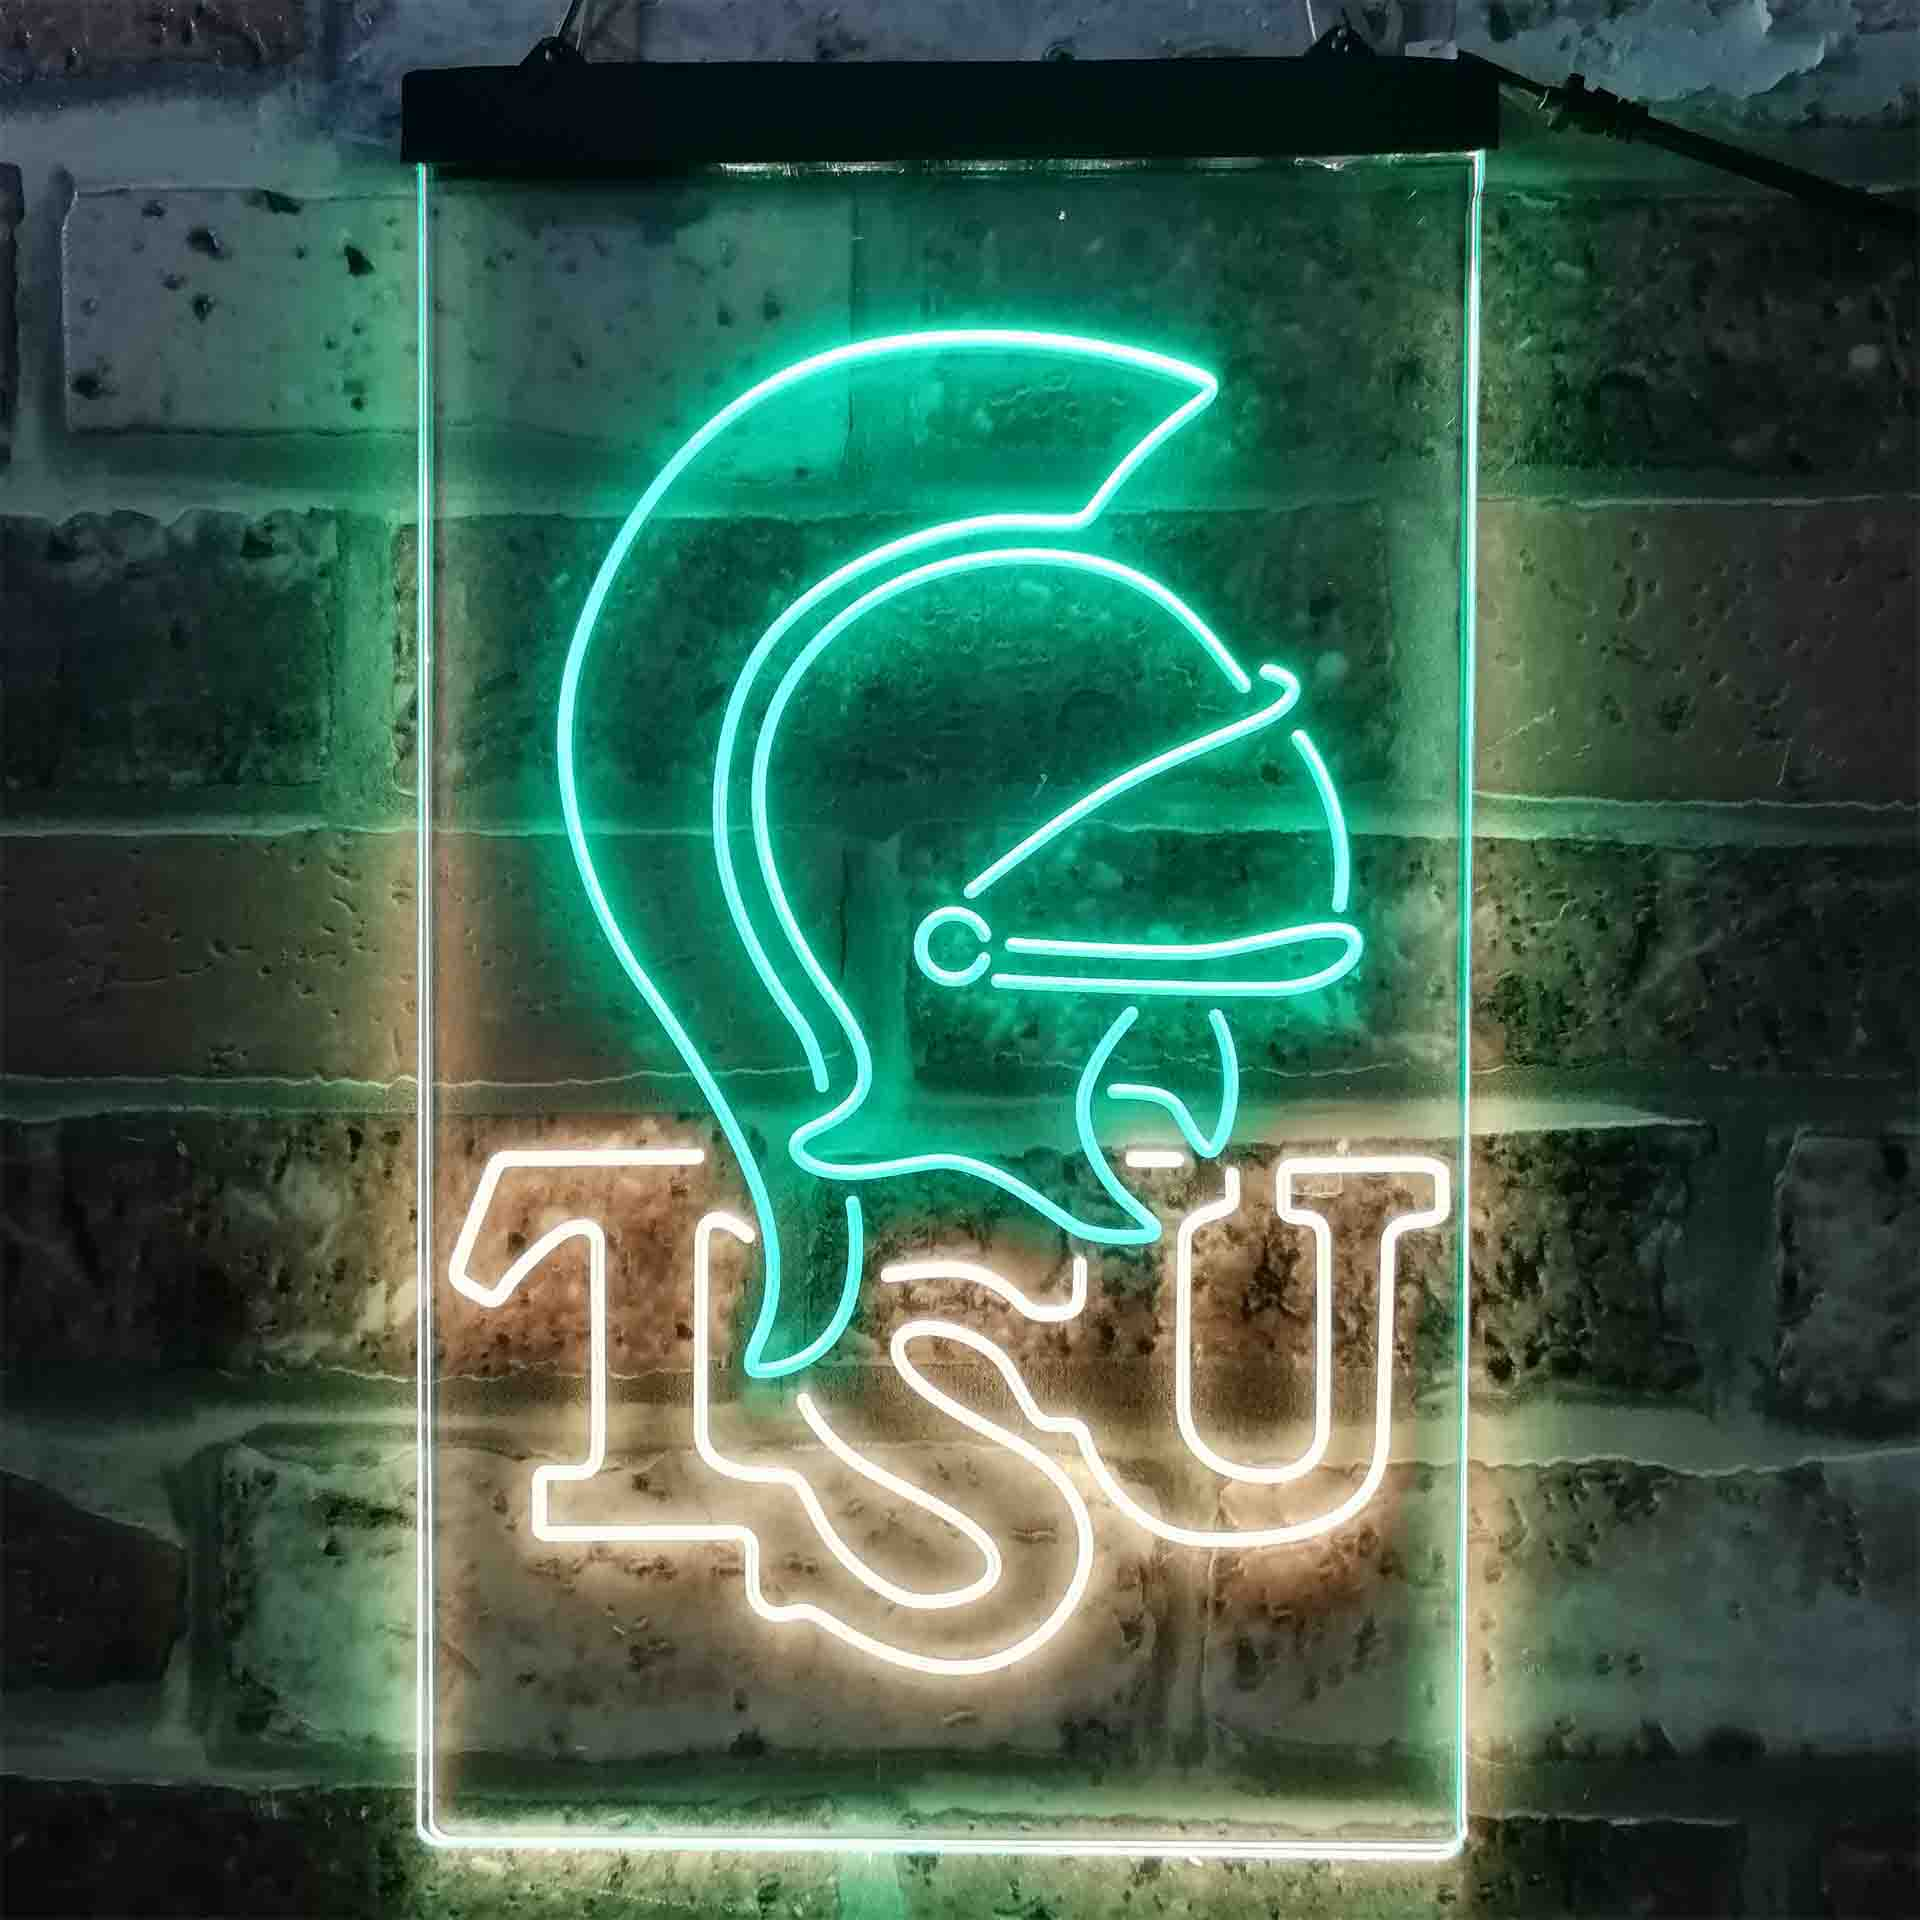 University Football Sport Team Troy Trojans Dual Color LED Neon Sign ProLedSign